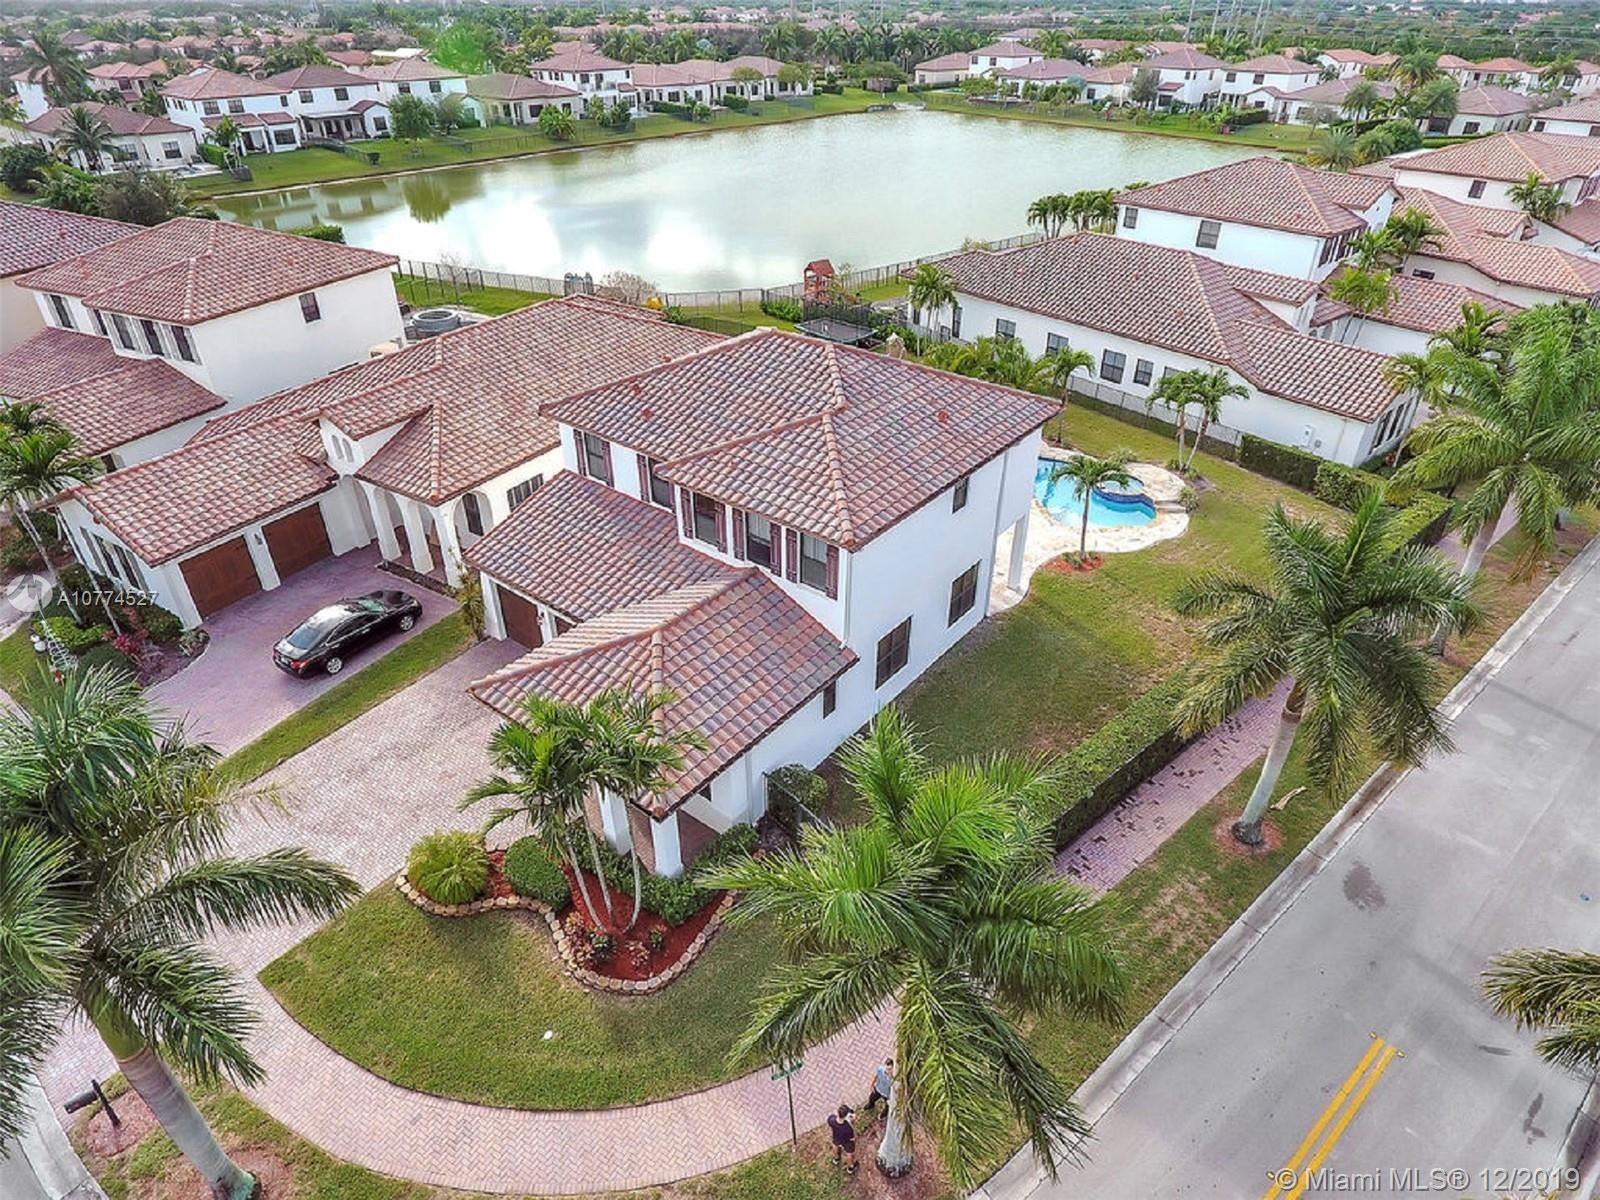 Photo of 3992 NW 82nd Way, Cooper City, FL 33024 (MLS # A10774527)